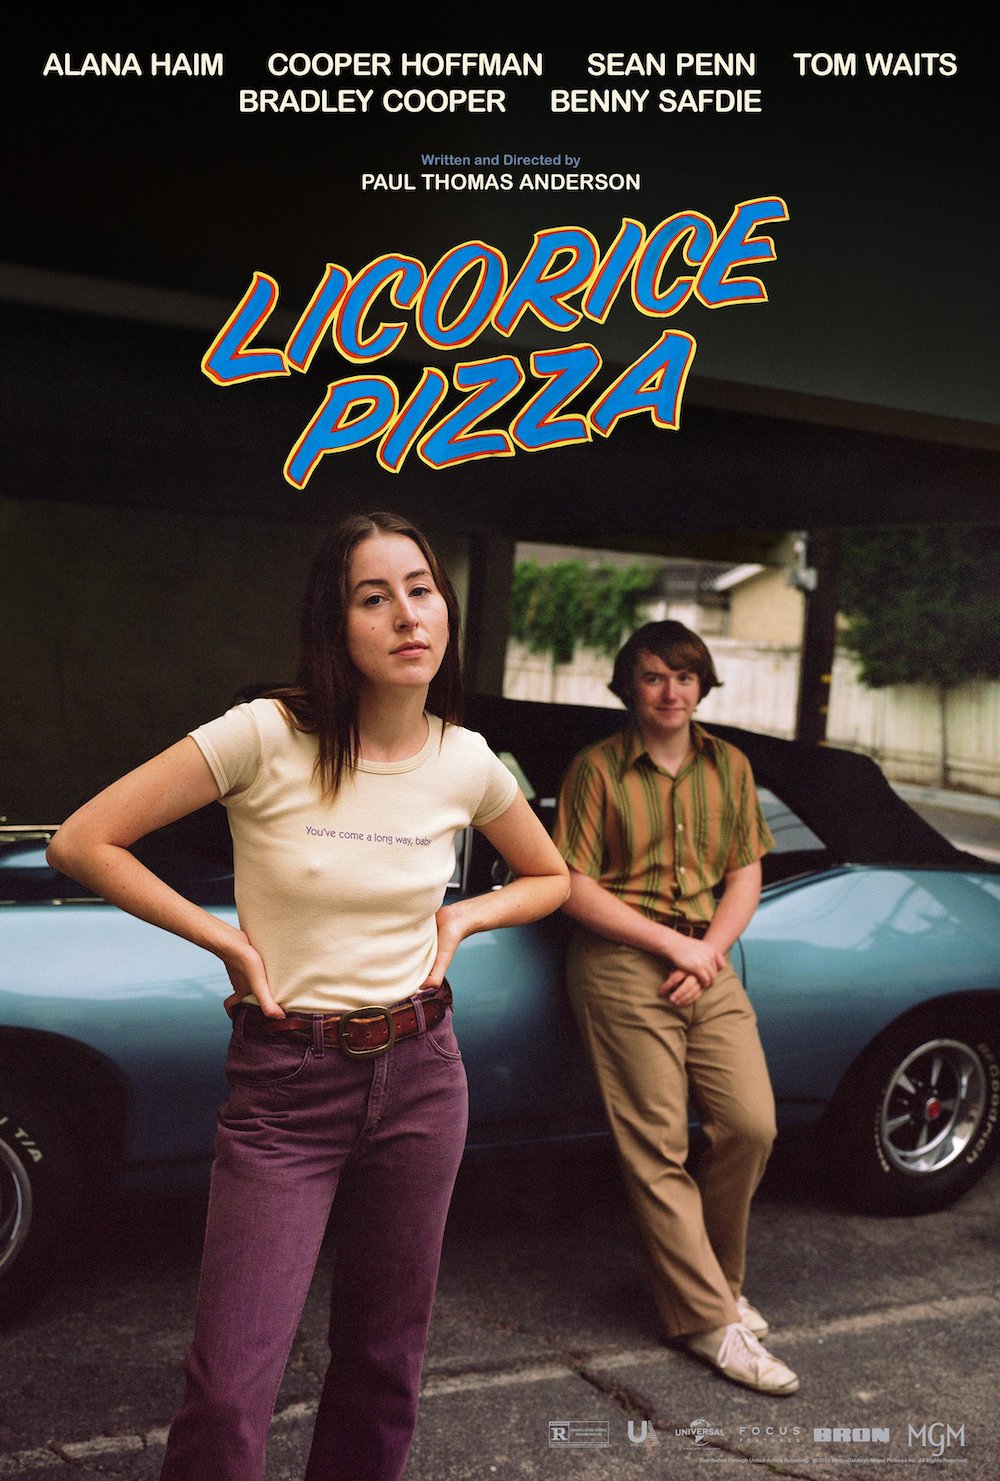 Watch Alana Haim Star In The Trailer For Paul Thomas Anderson's New Movie Licorice Pizza